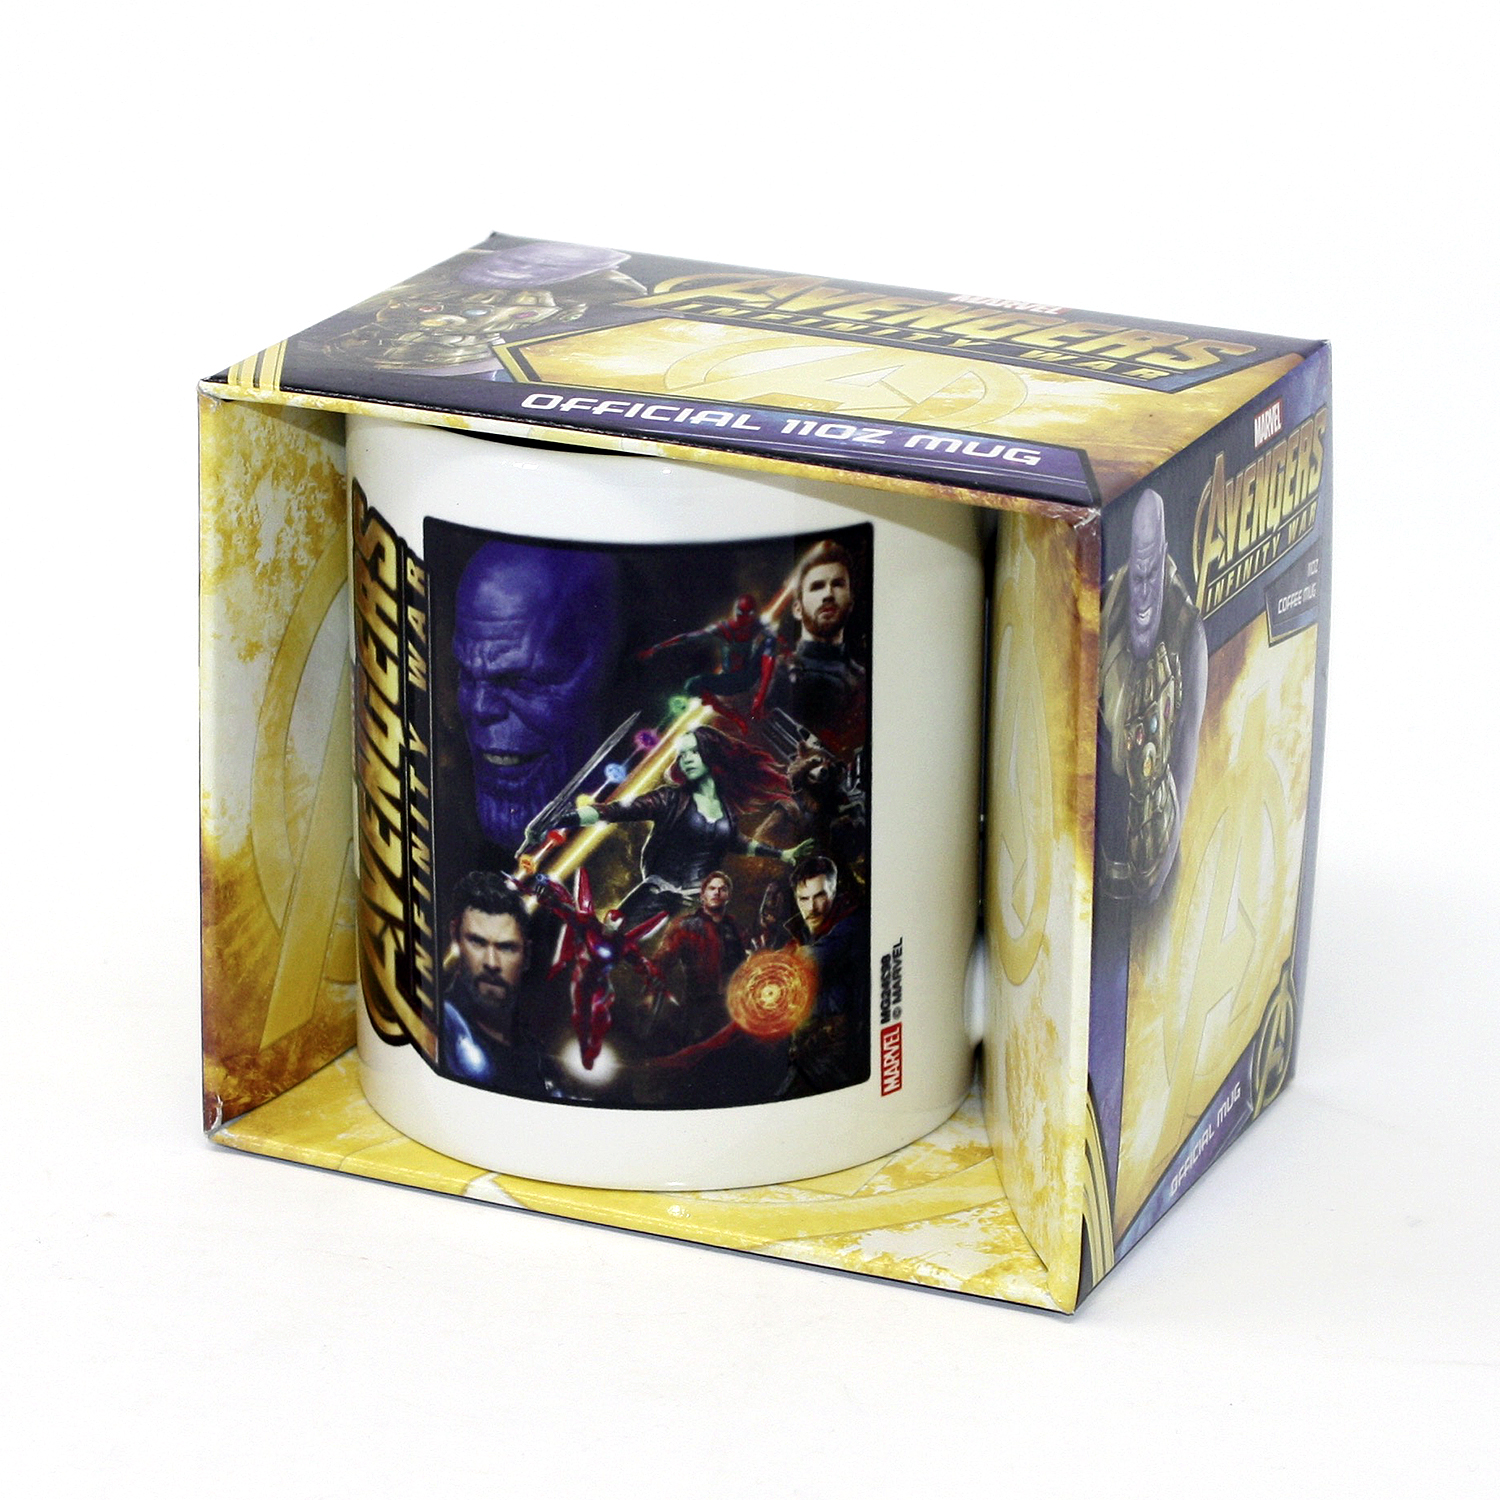 4e910c607 Marvel Avengers Infinity War Mug Space Montage - Glasses, Mugs, Bowls buy  now in the shop Close Up GmbH